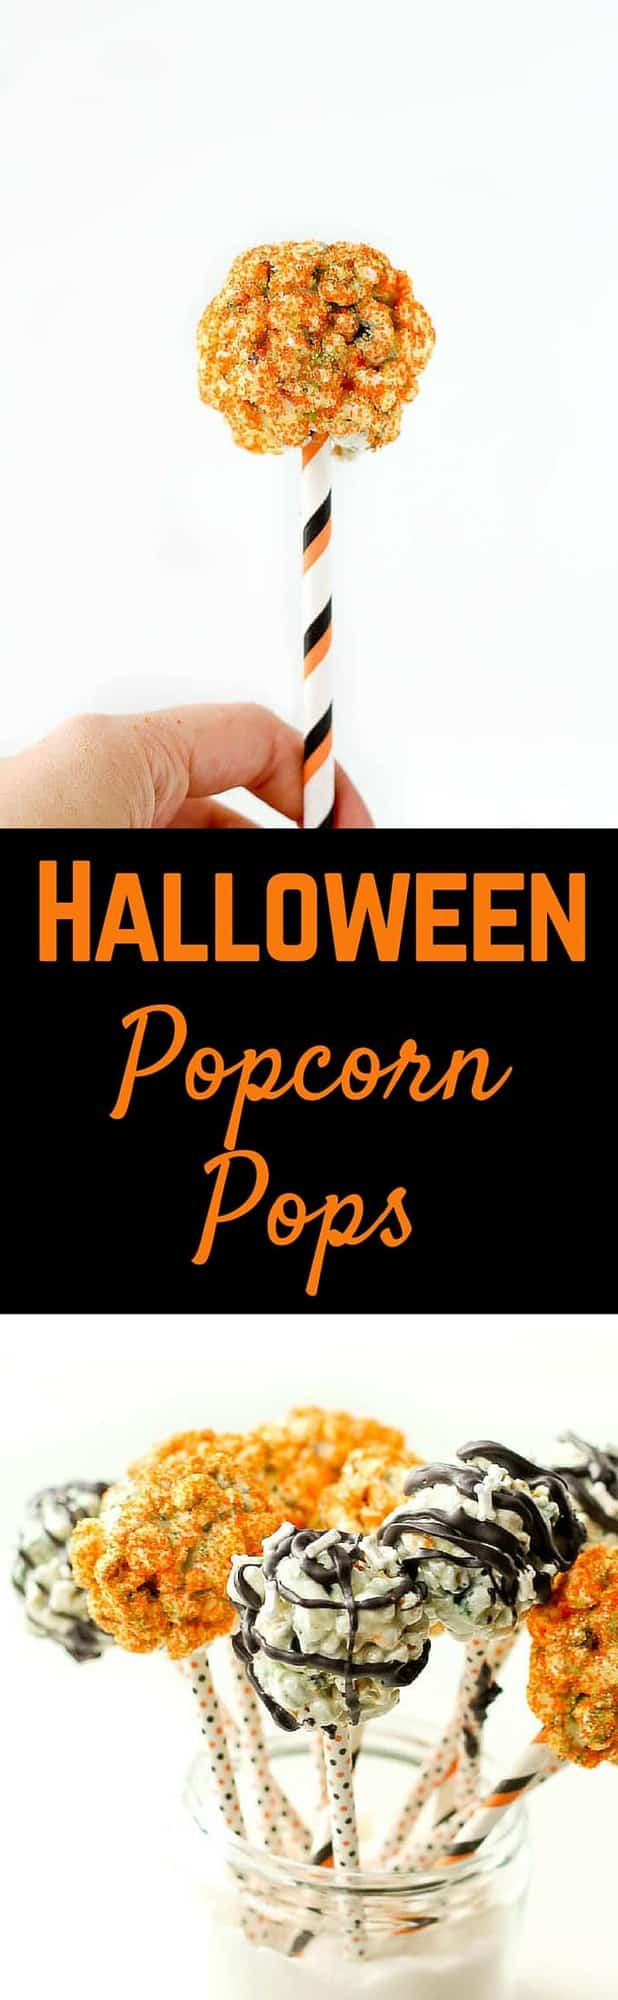 This Halloween popcorn pops recipe is perfect for Halloween parties and events, and easier to make than you'd think! Kids and adults will love eating their sweet, pumpkin-spiced popcorn off of a stick! Get the recipe on RachelCooks.com!